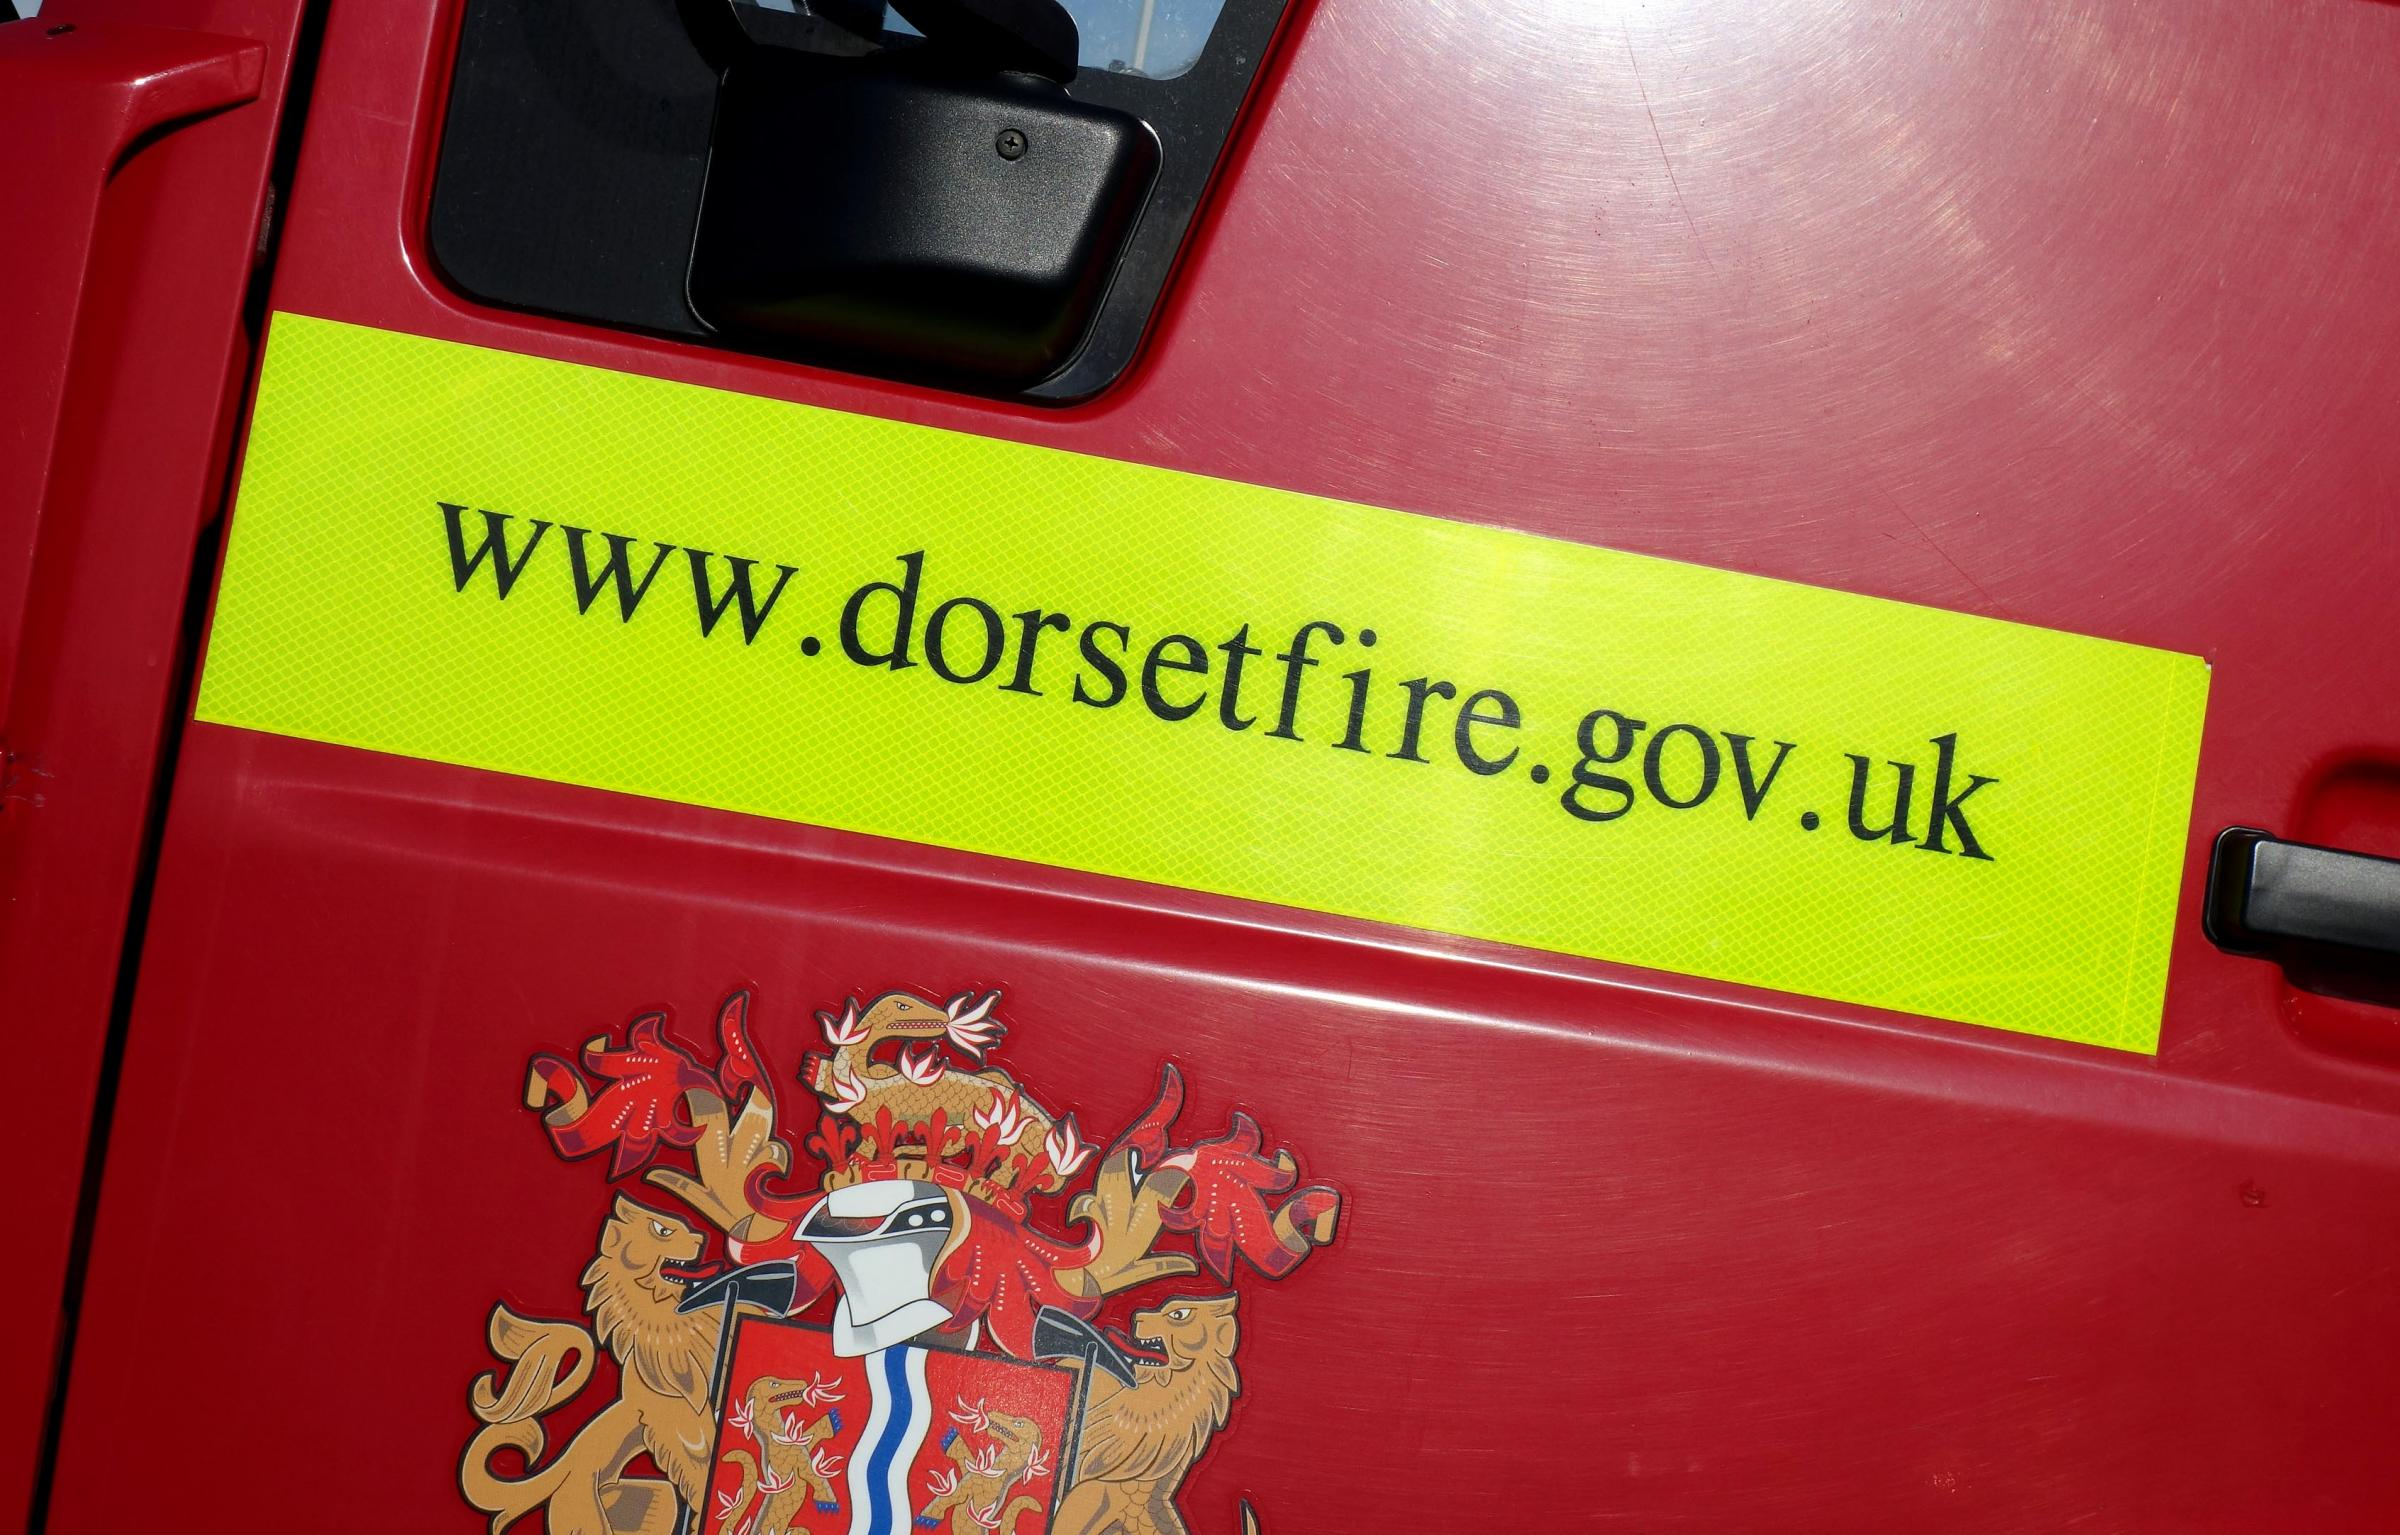 Firefighters attend moped fire in Weymouth